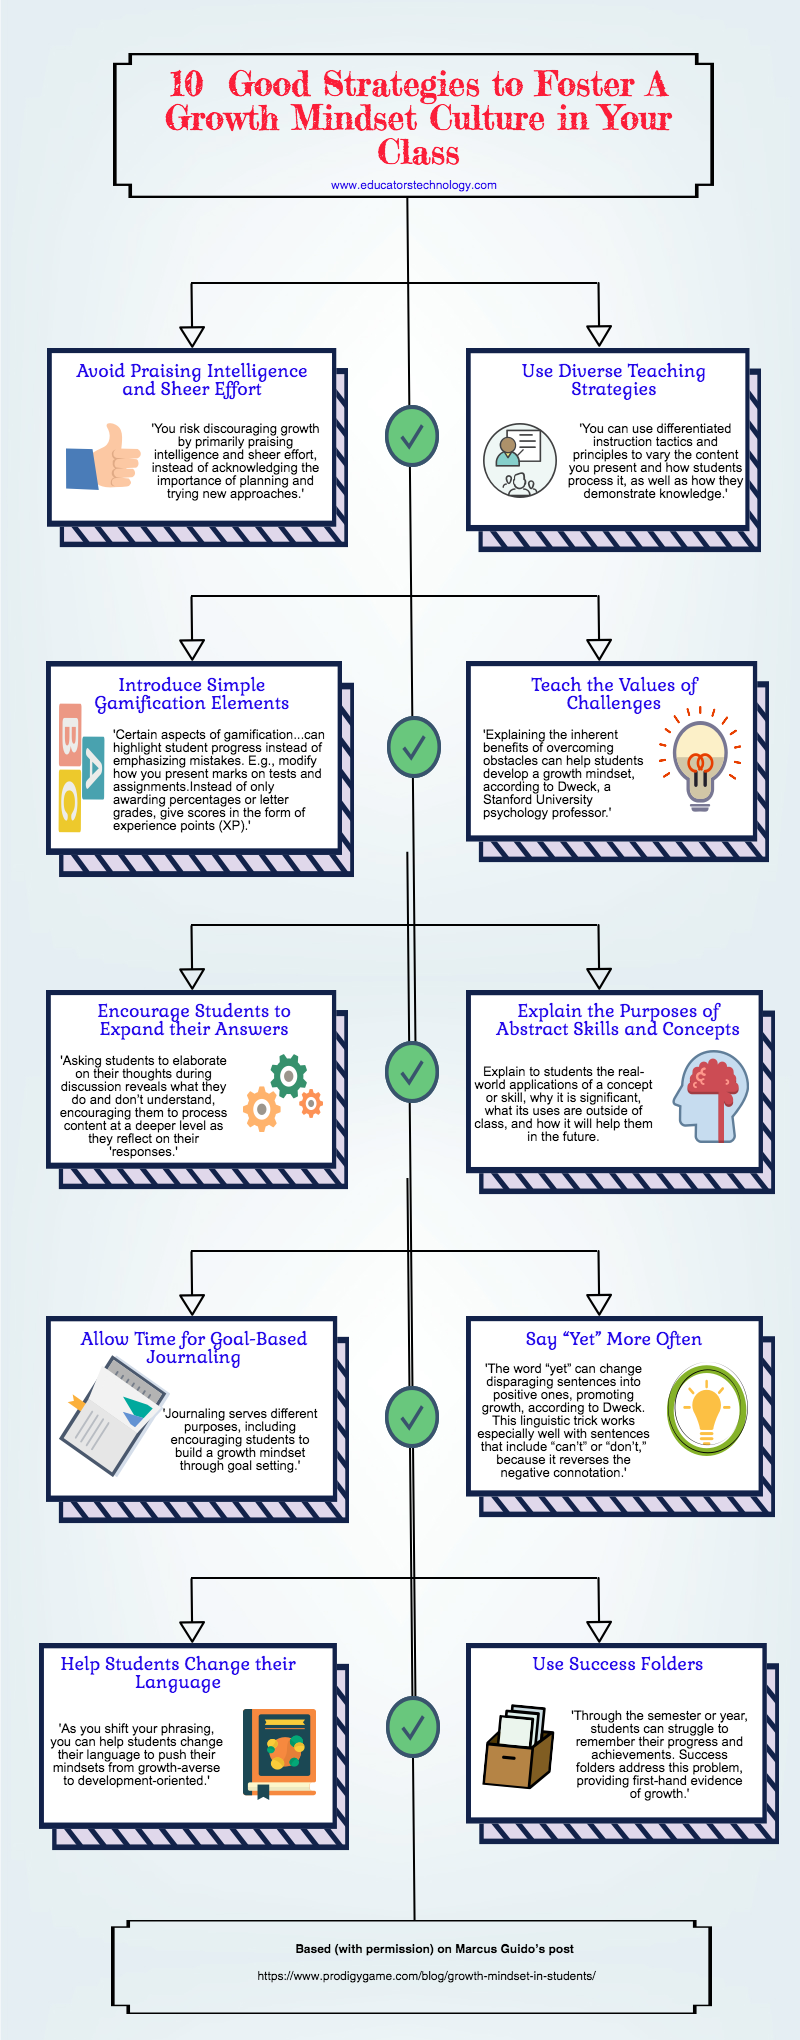 10  Good Strategies to Foster A Growth Mindset in Your Class